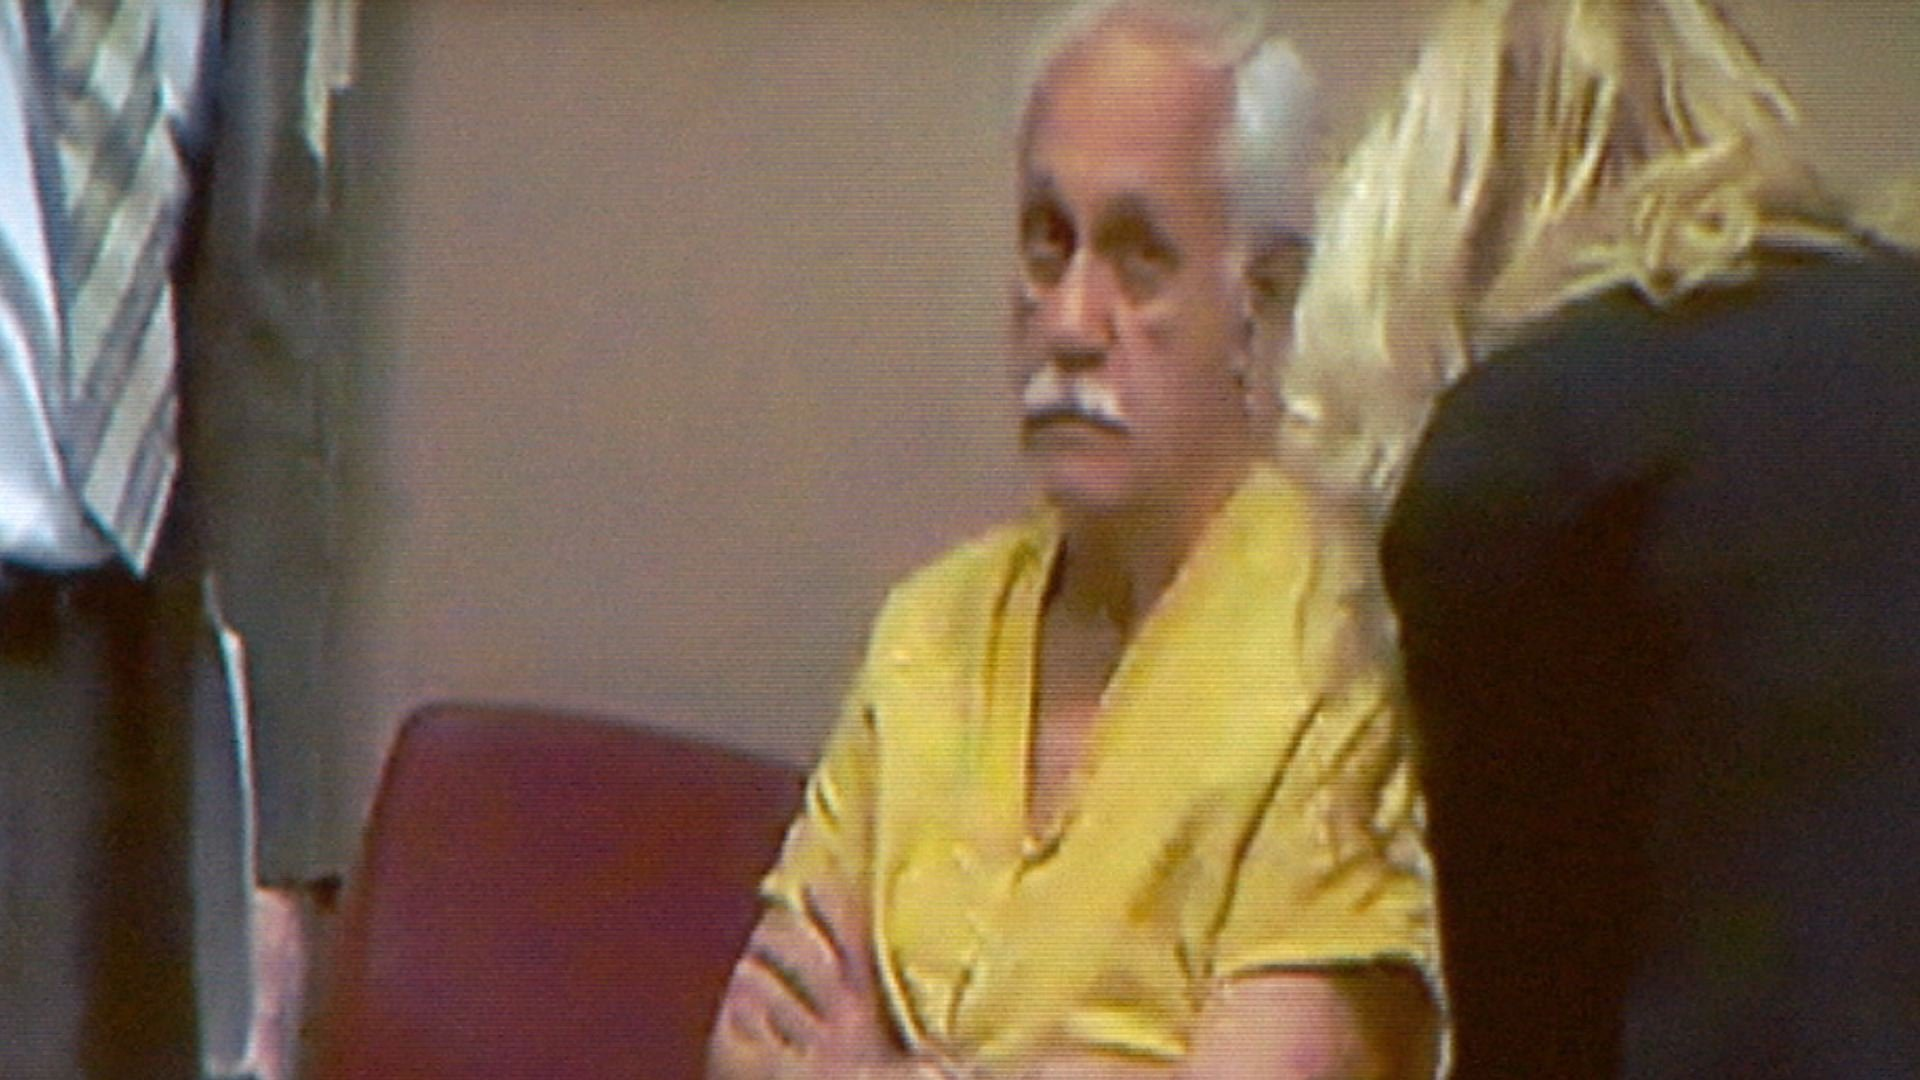 The attorney of Robert Caruso told KHQ on Monday the acts between his client and his accuser were consensual.